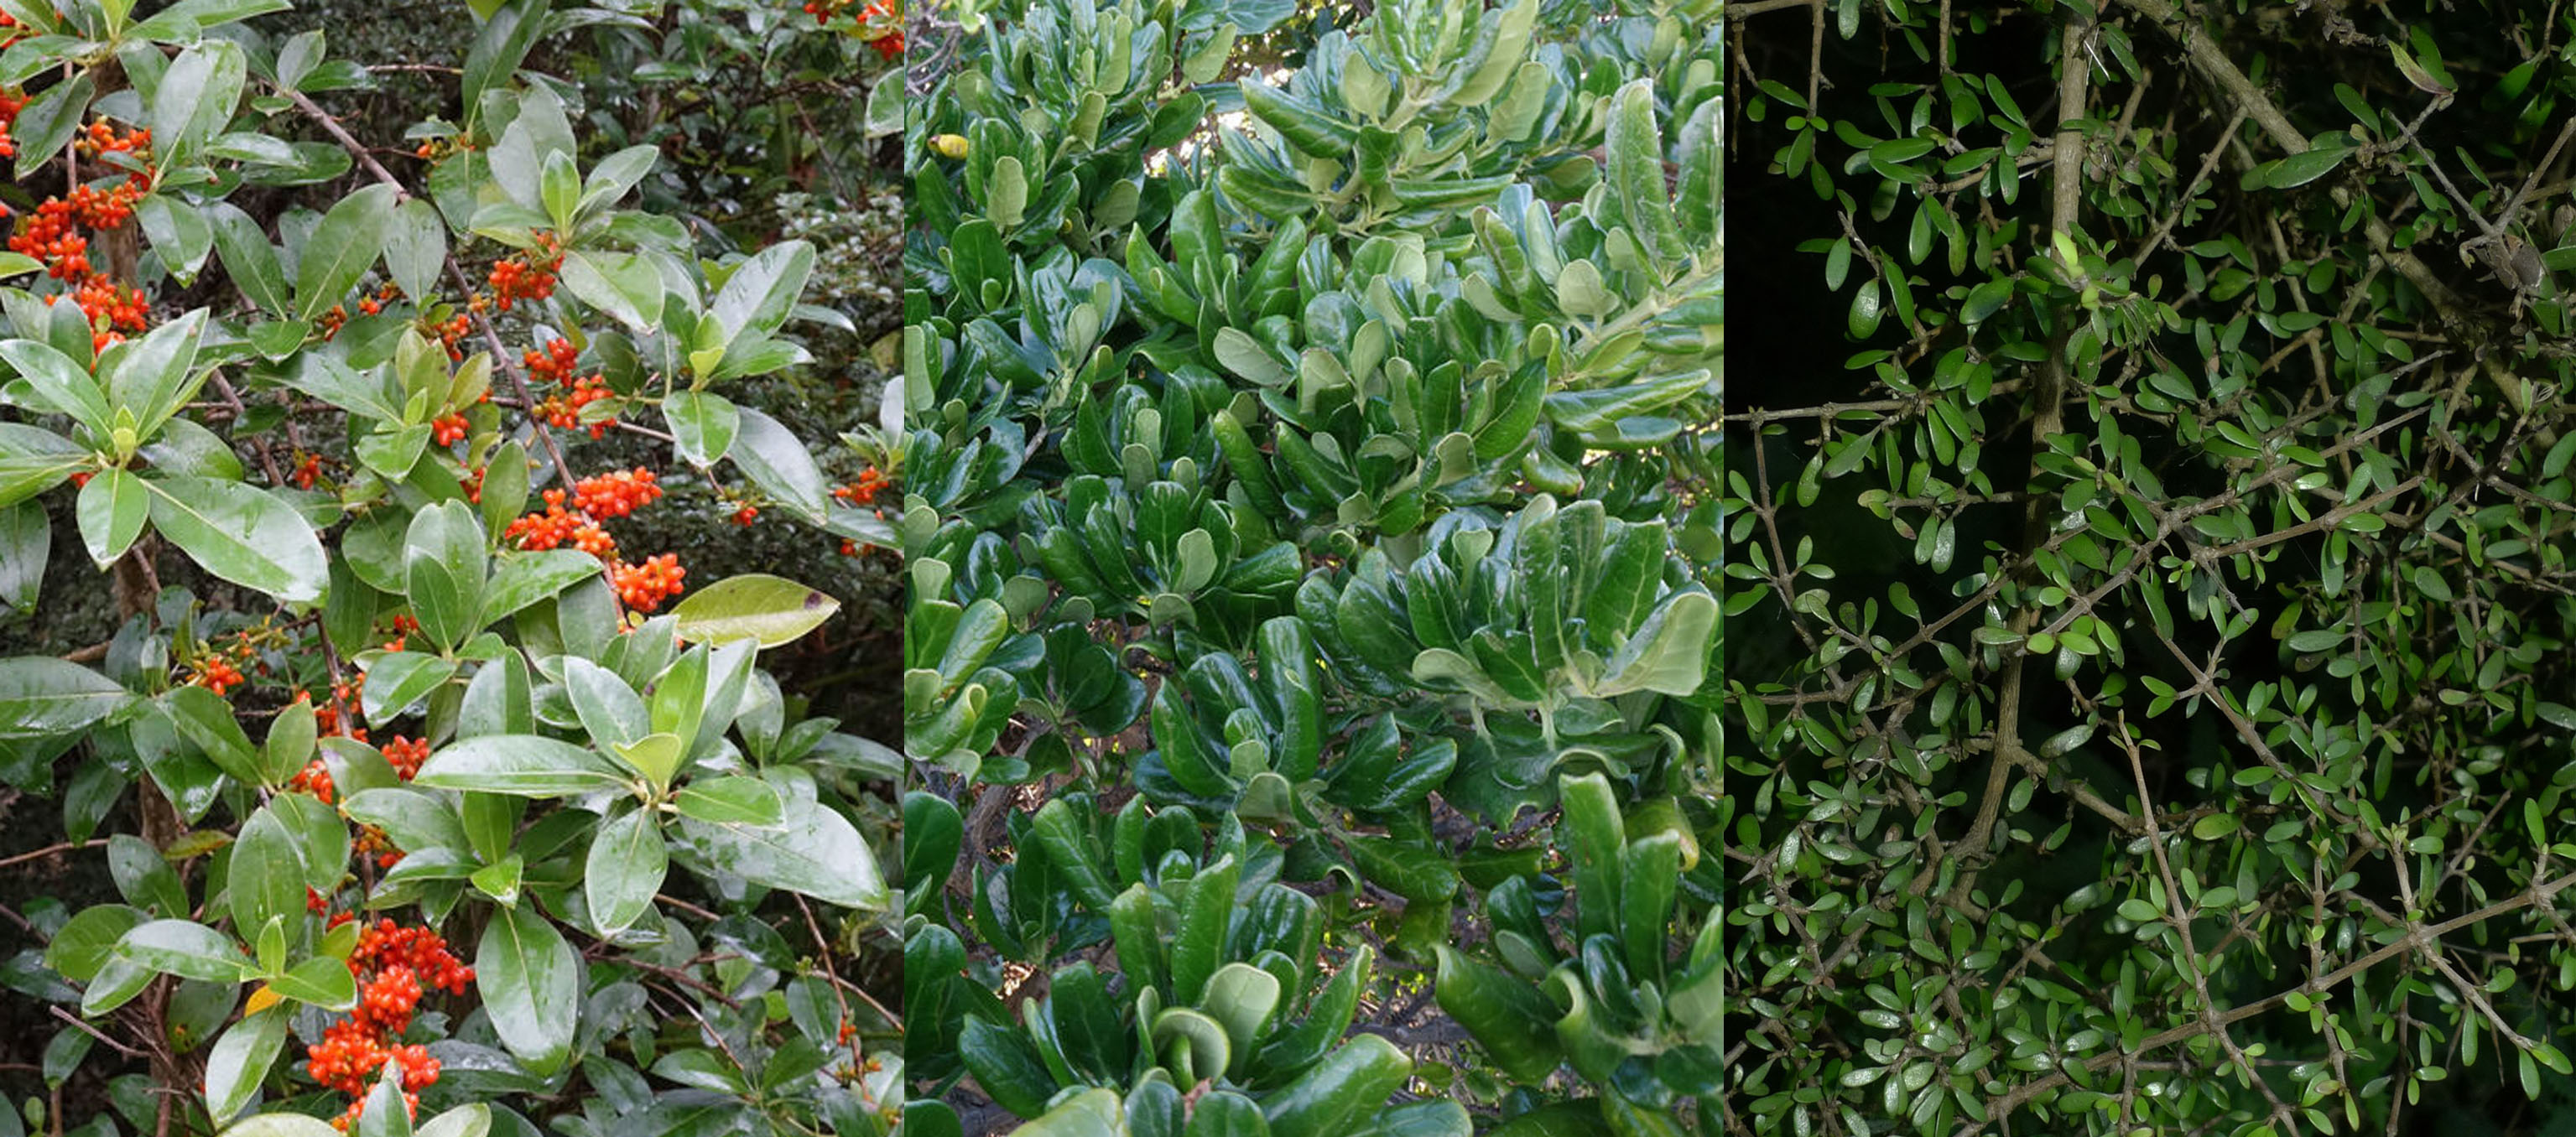 Three photos of green shrubs, the one on the left also has orange berries